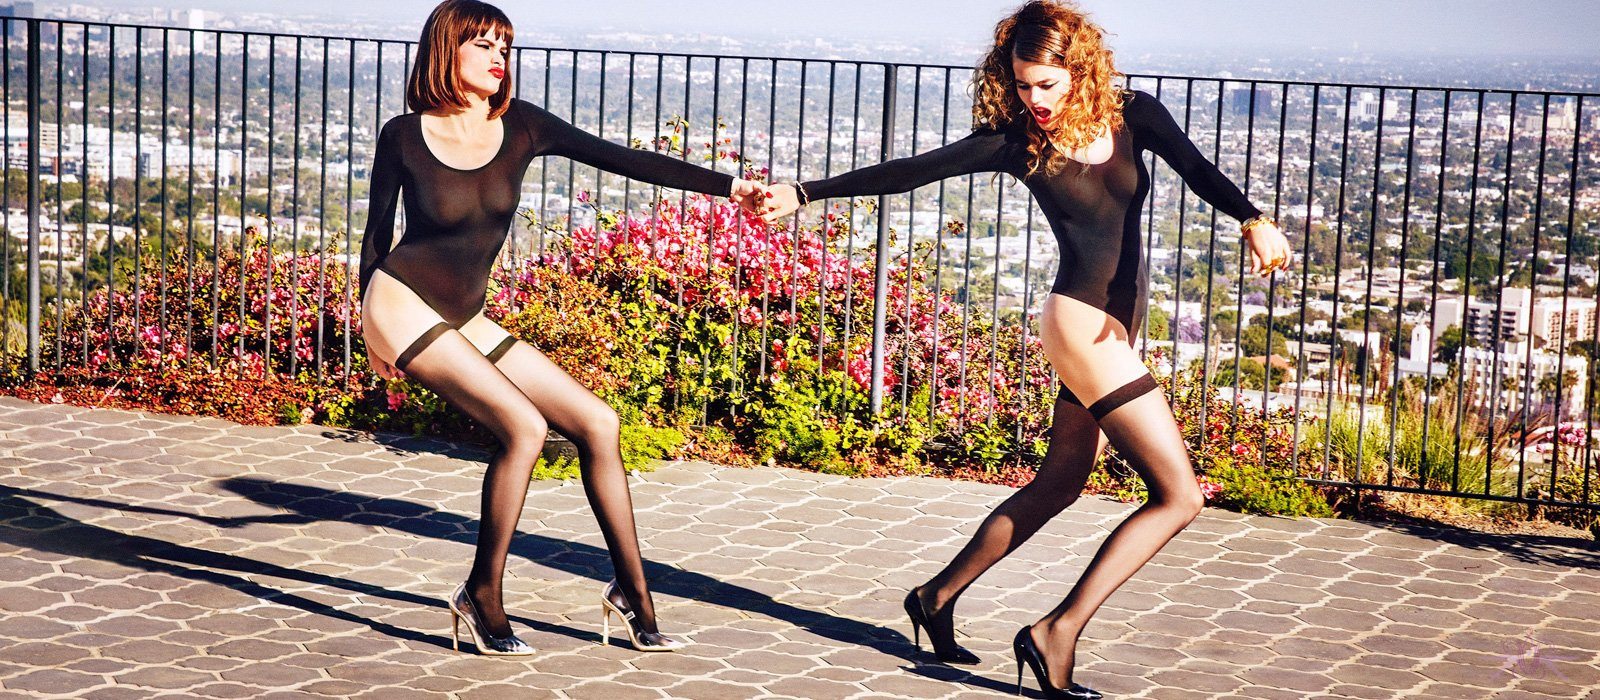 Wolford hold ups at Mayfair Stockings